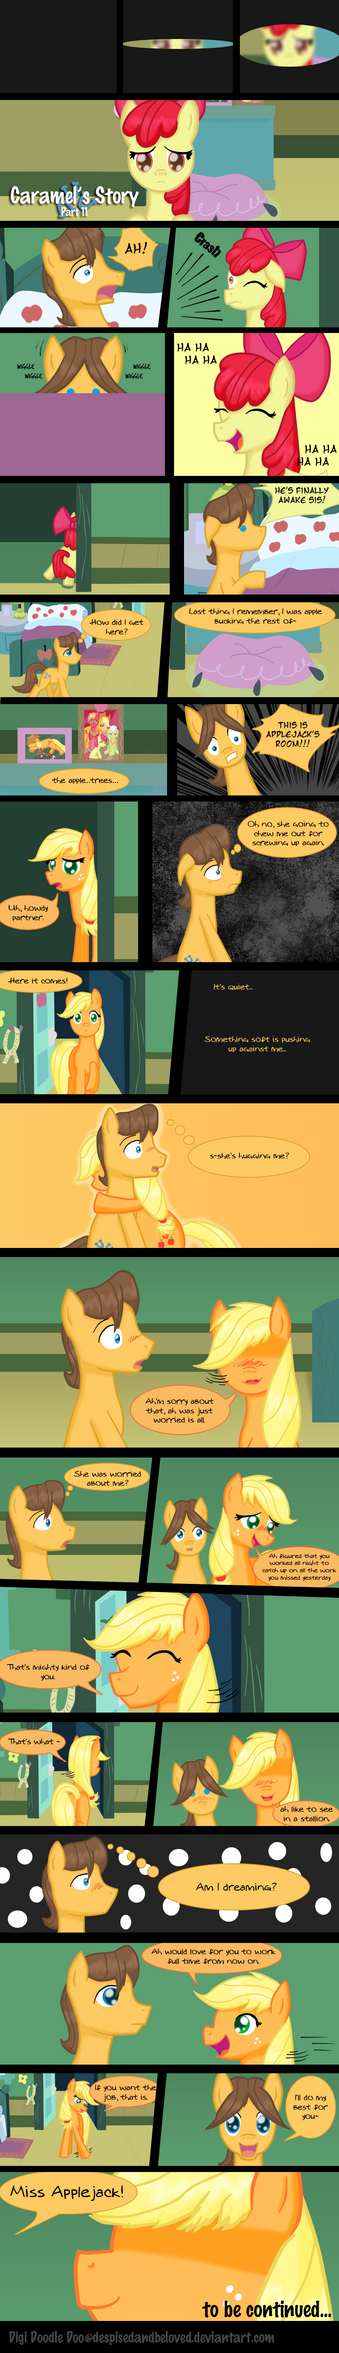 Caramel's Story Part 11 by DespisedAndBeloved